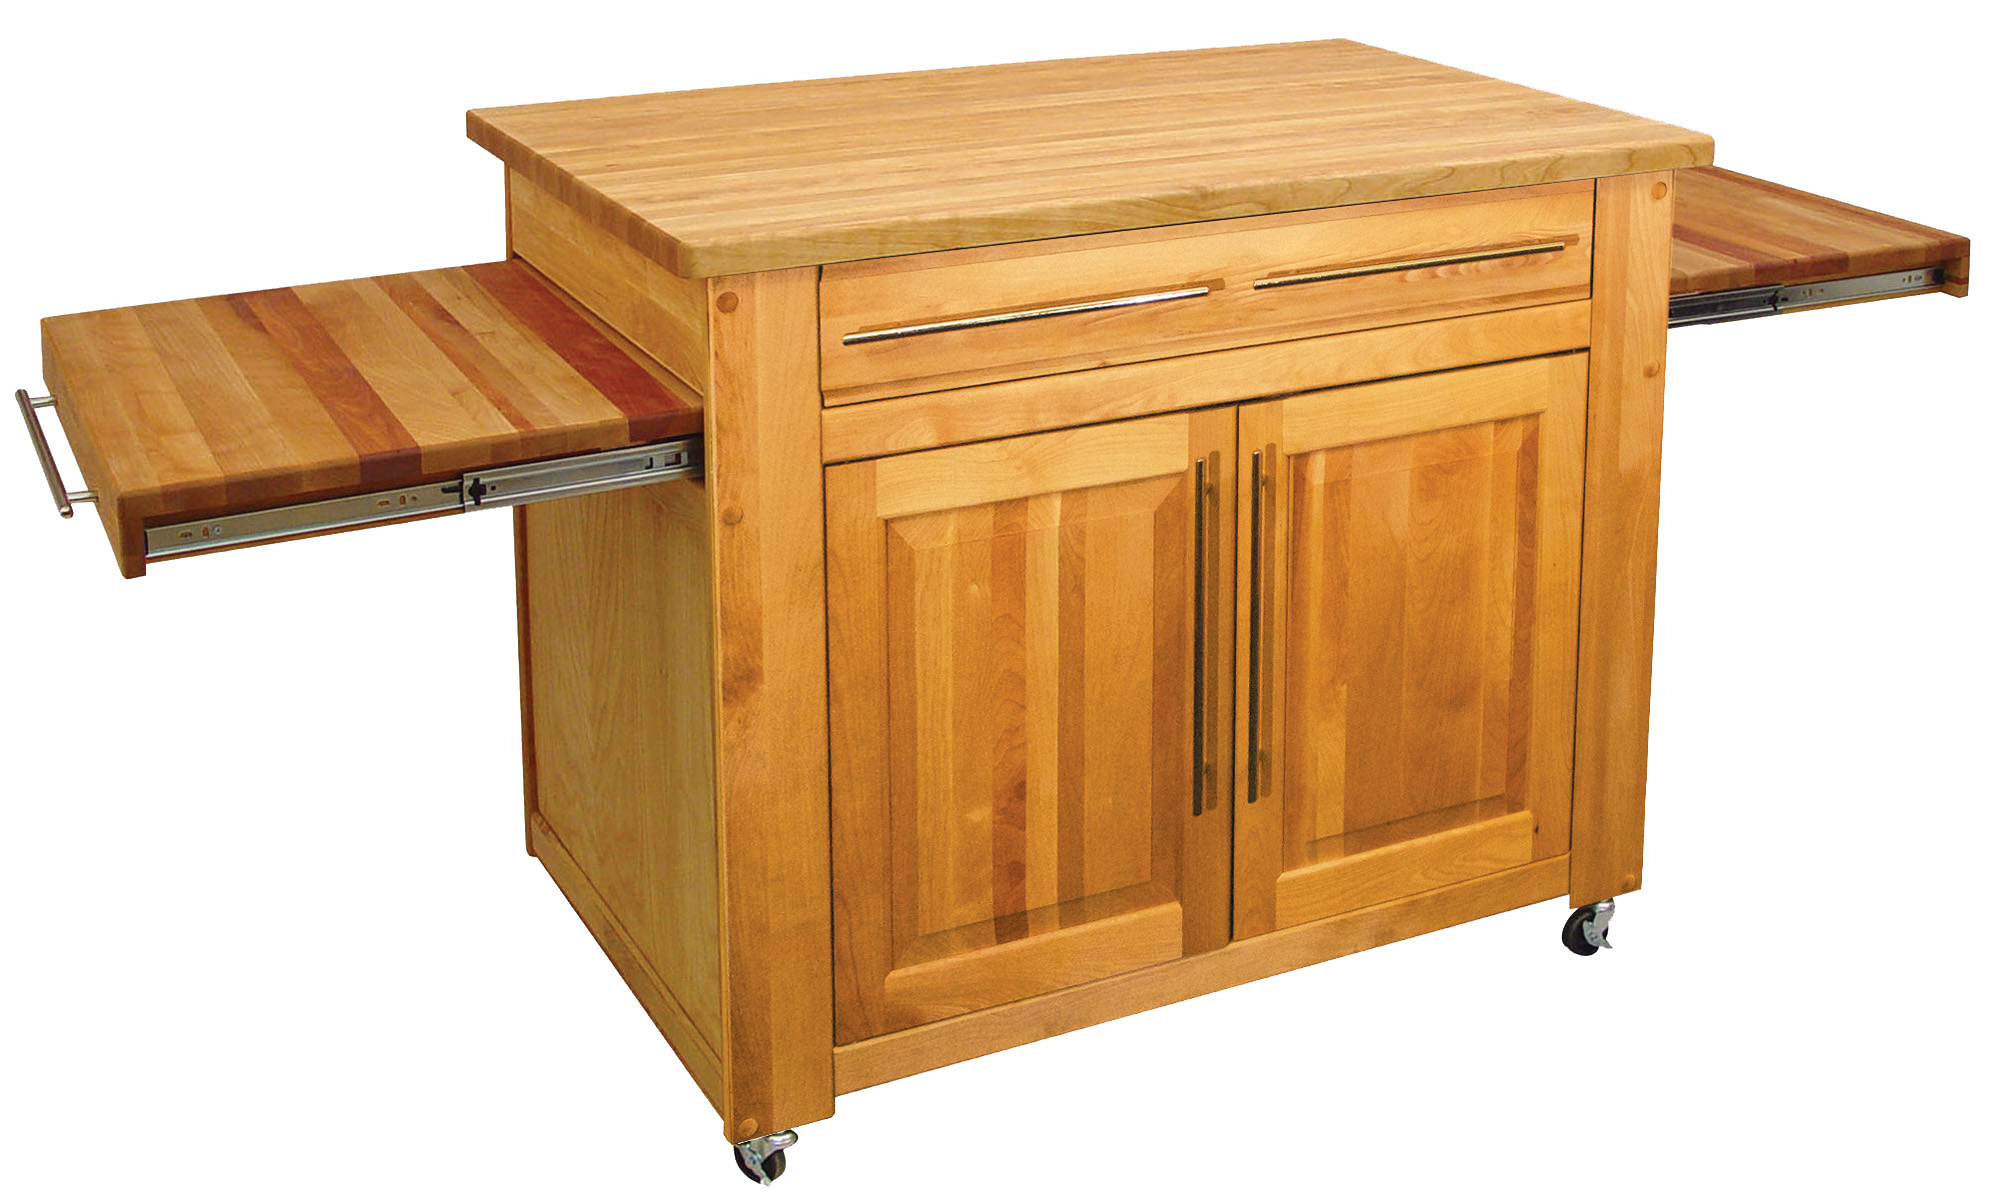 Butcher Block Island Kitchen Islands